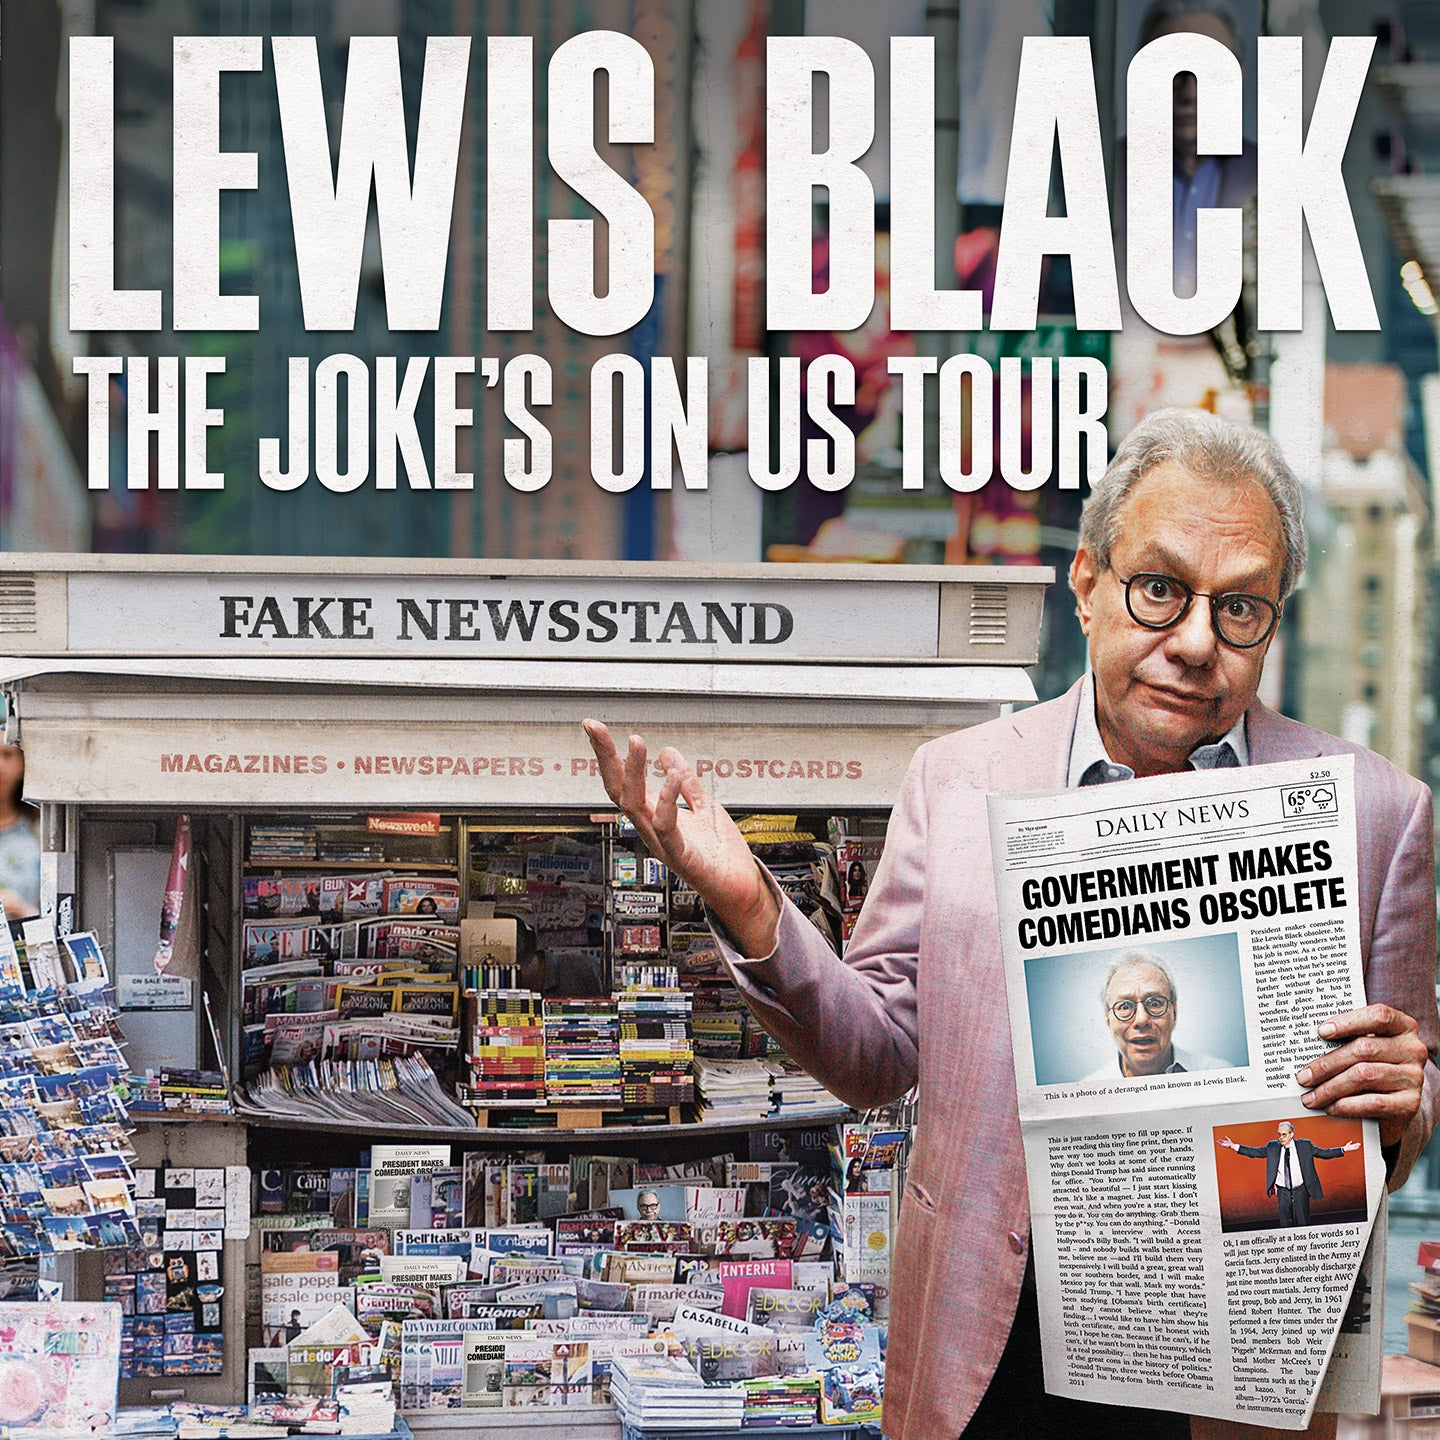 Lewis Black: The Joke's On US Tour